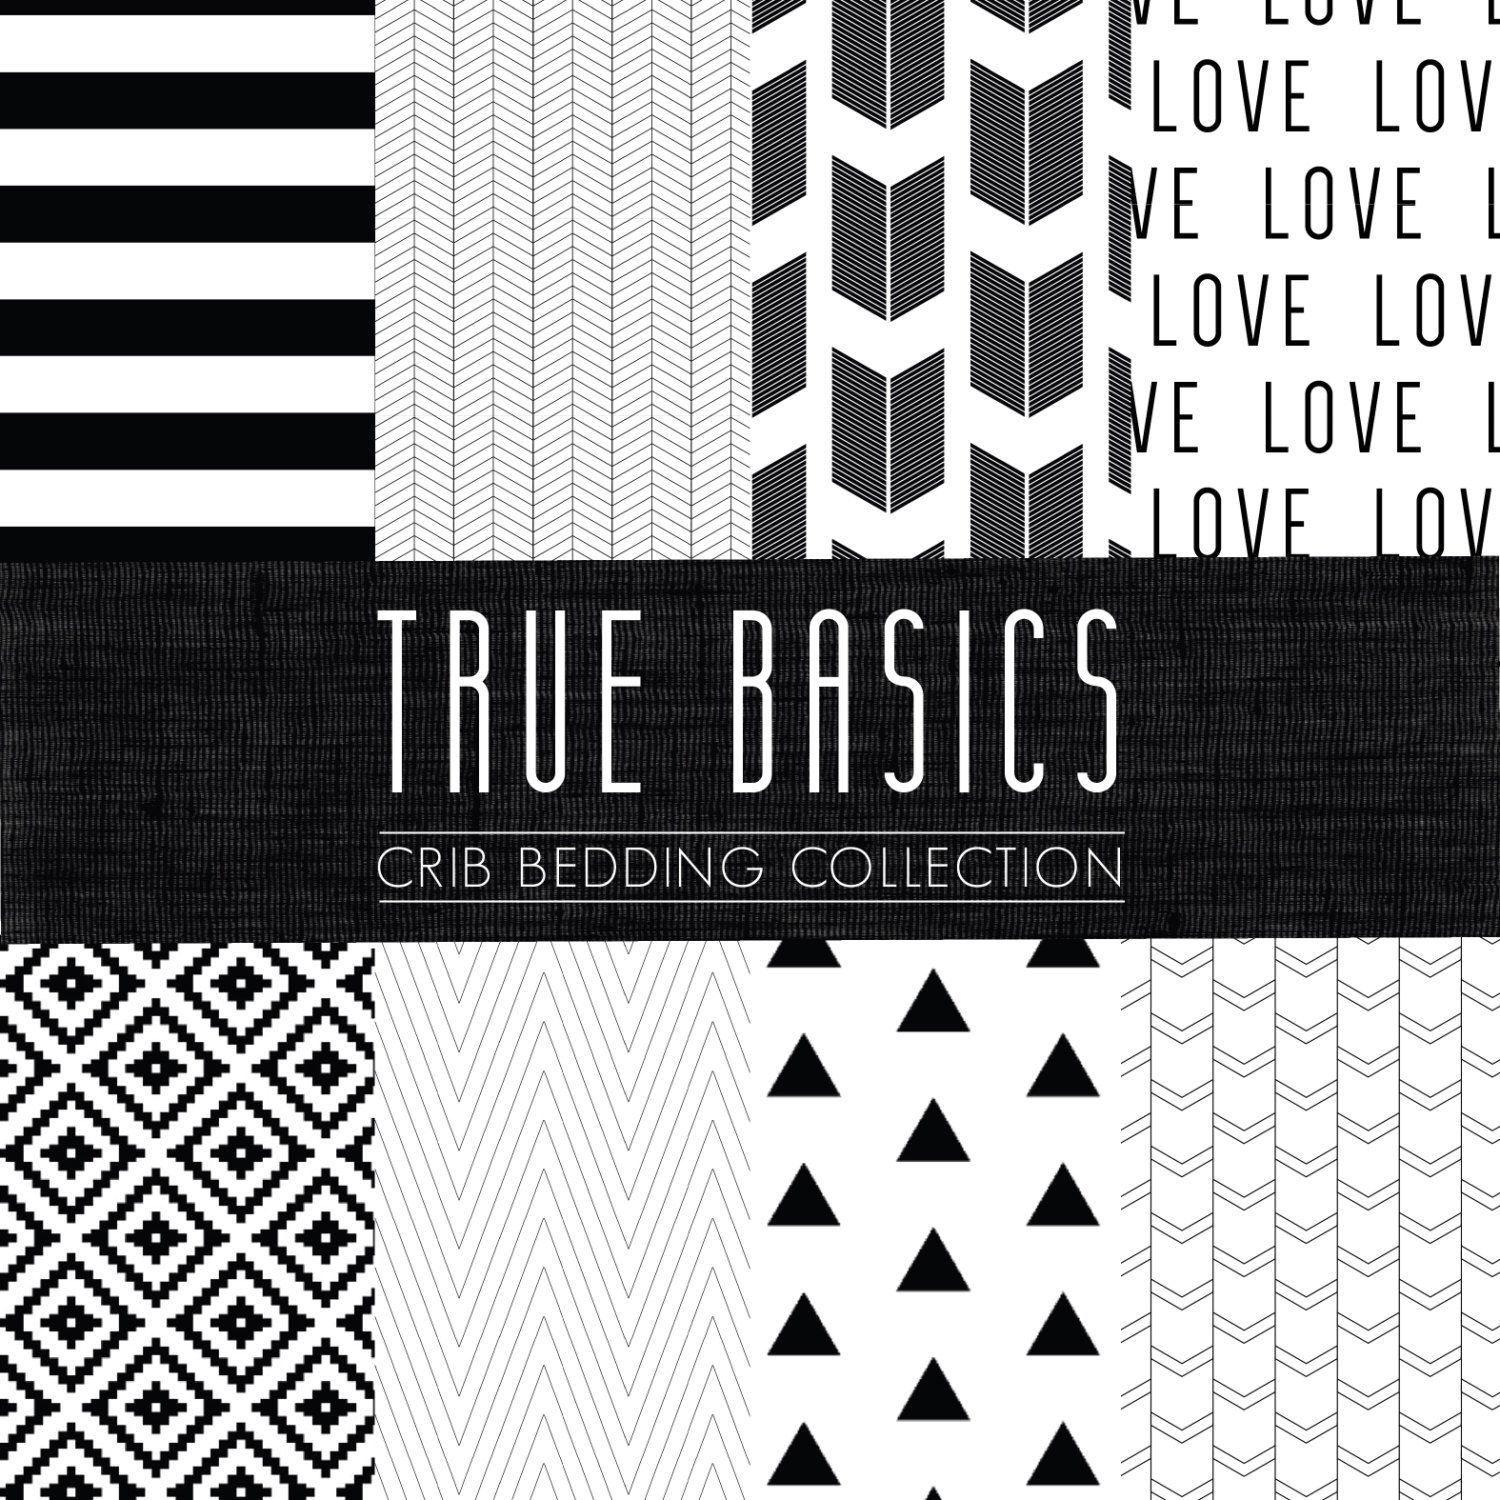 true basics crib bedding set black and white custom cribcot bedding choose your fabric cozybyjess exclusive